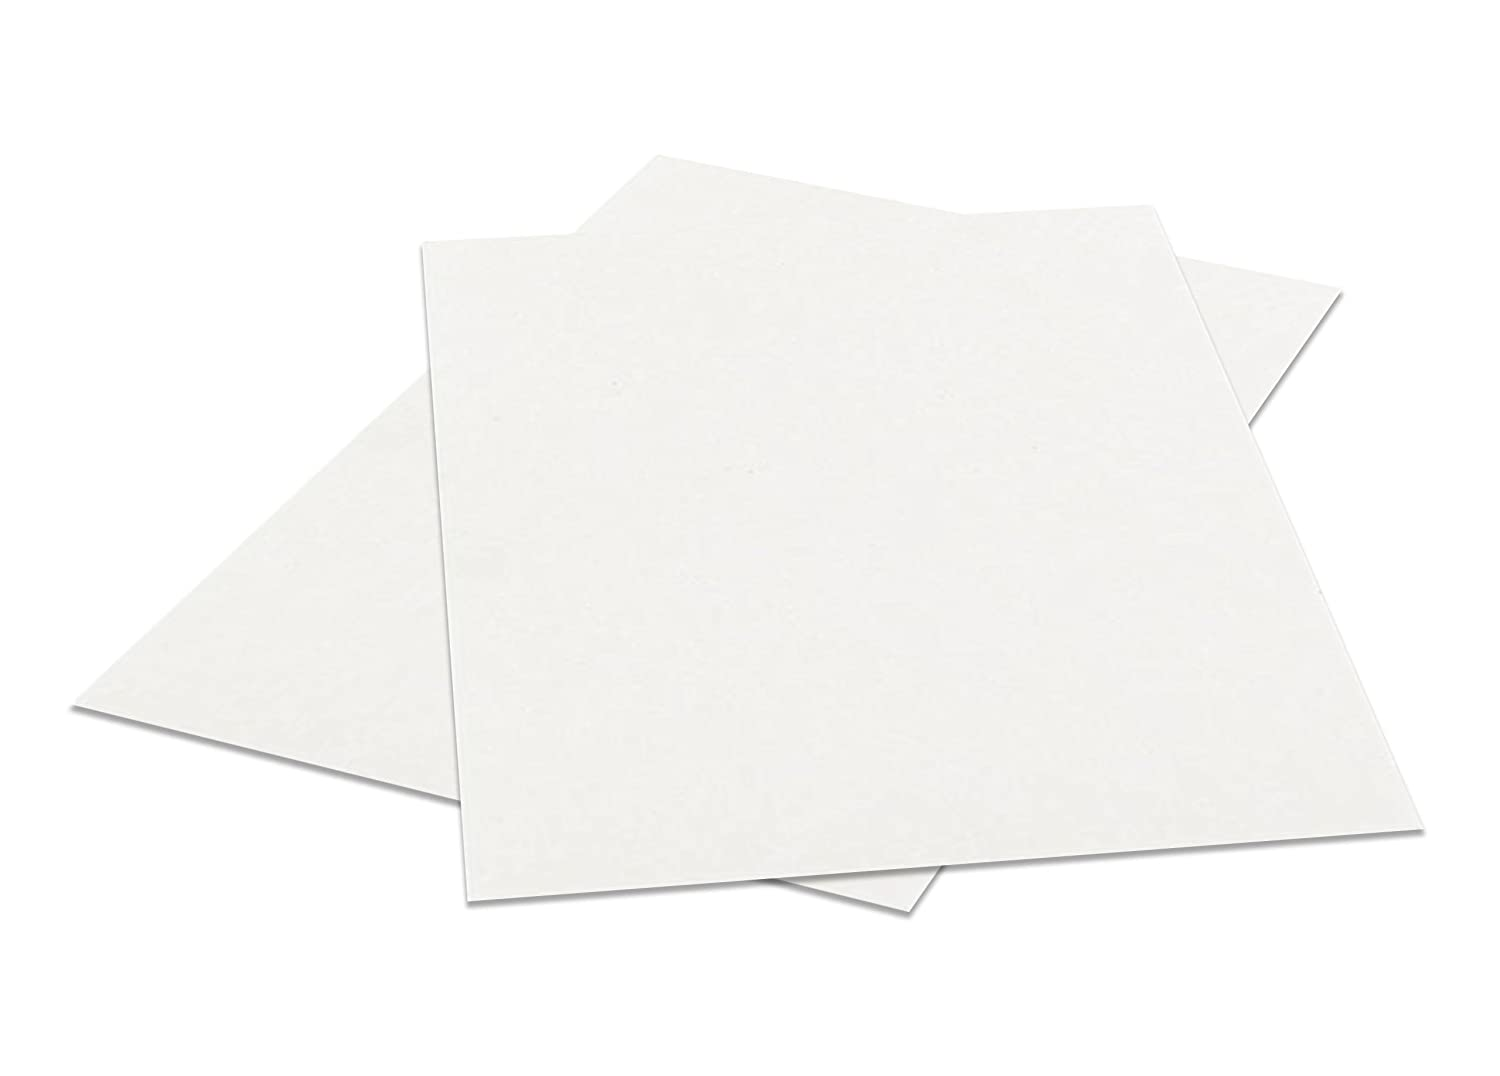 8.5 X 11 White Chipboard - Cardboard Medium Weight Chipboard Sheets - 25 Per Pack. Superfine Printing Inc. 4336978352